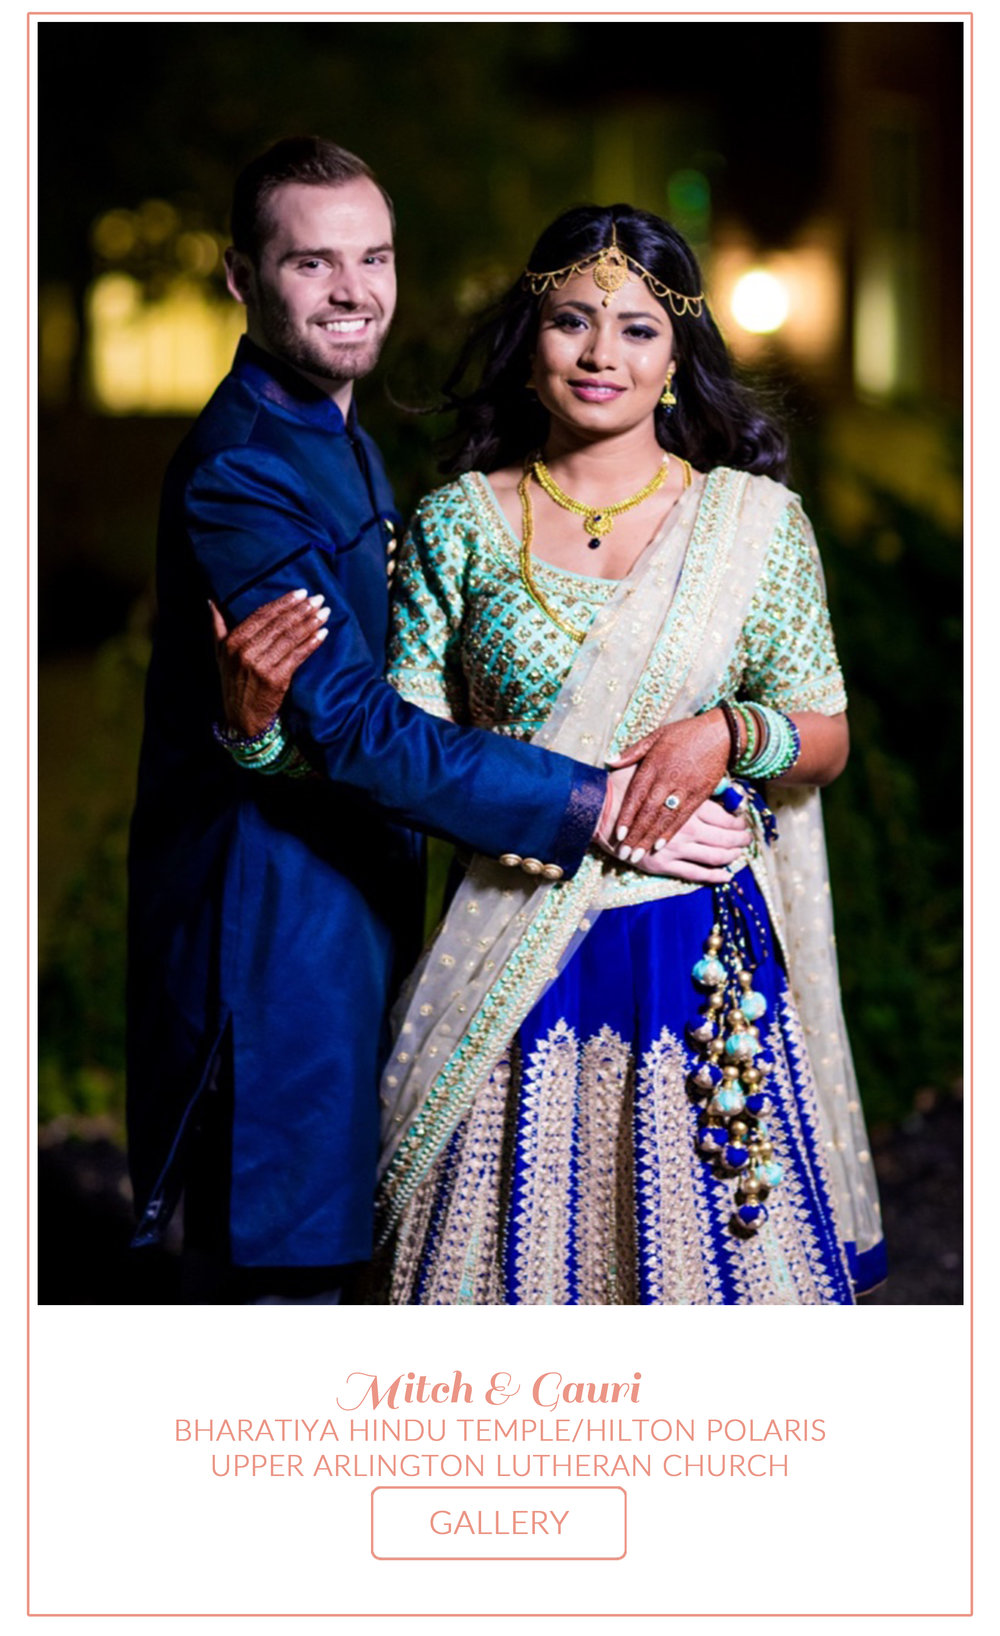 Mitch & Gauri GALLERY PICTURE-Recovered.jpg